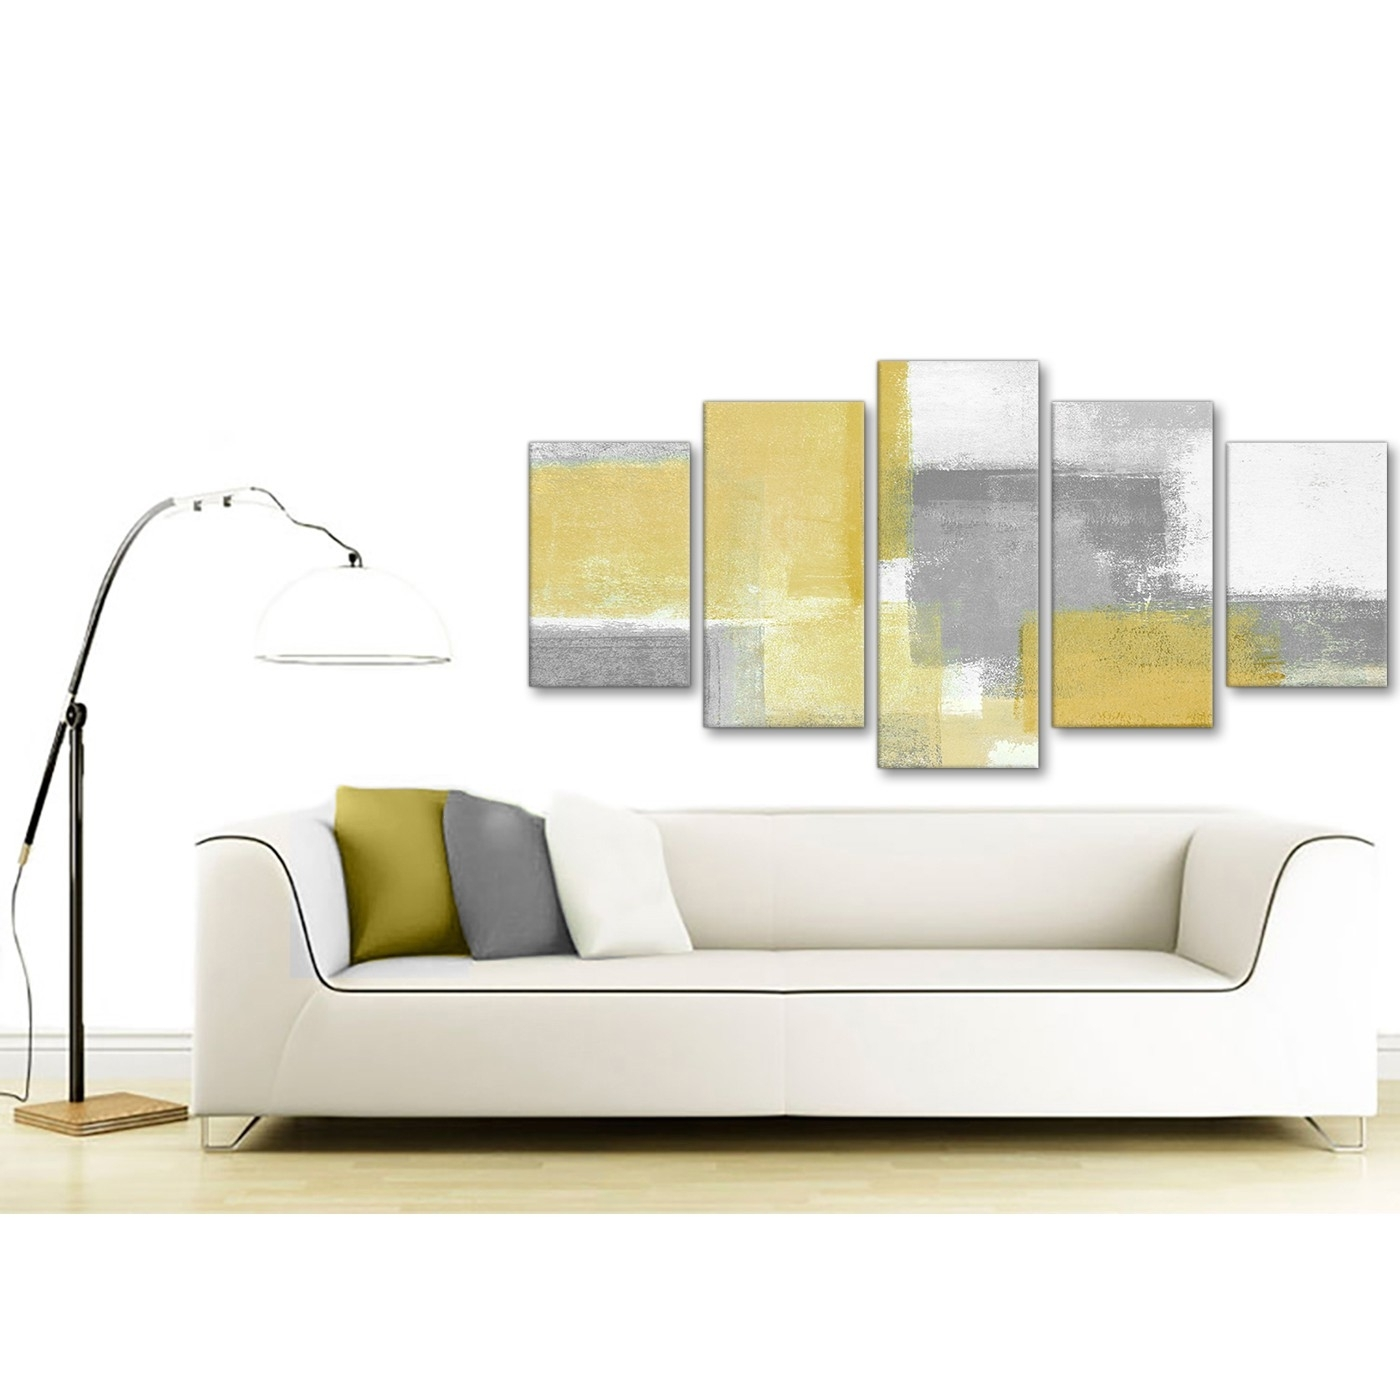 5 Piece Mustard Yellow Grey Abstract Living Room Canvas Wall Art With Regard To 2017 Abstract Living Room Wall Art (View 5 of 20)